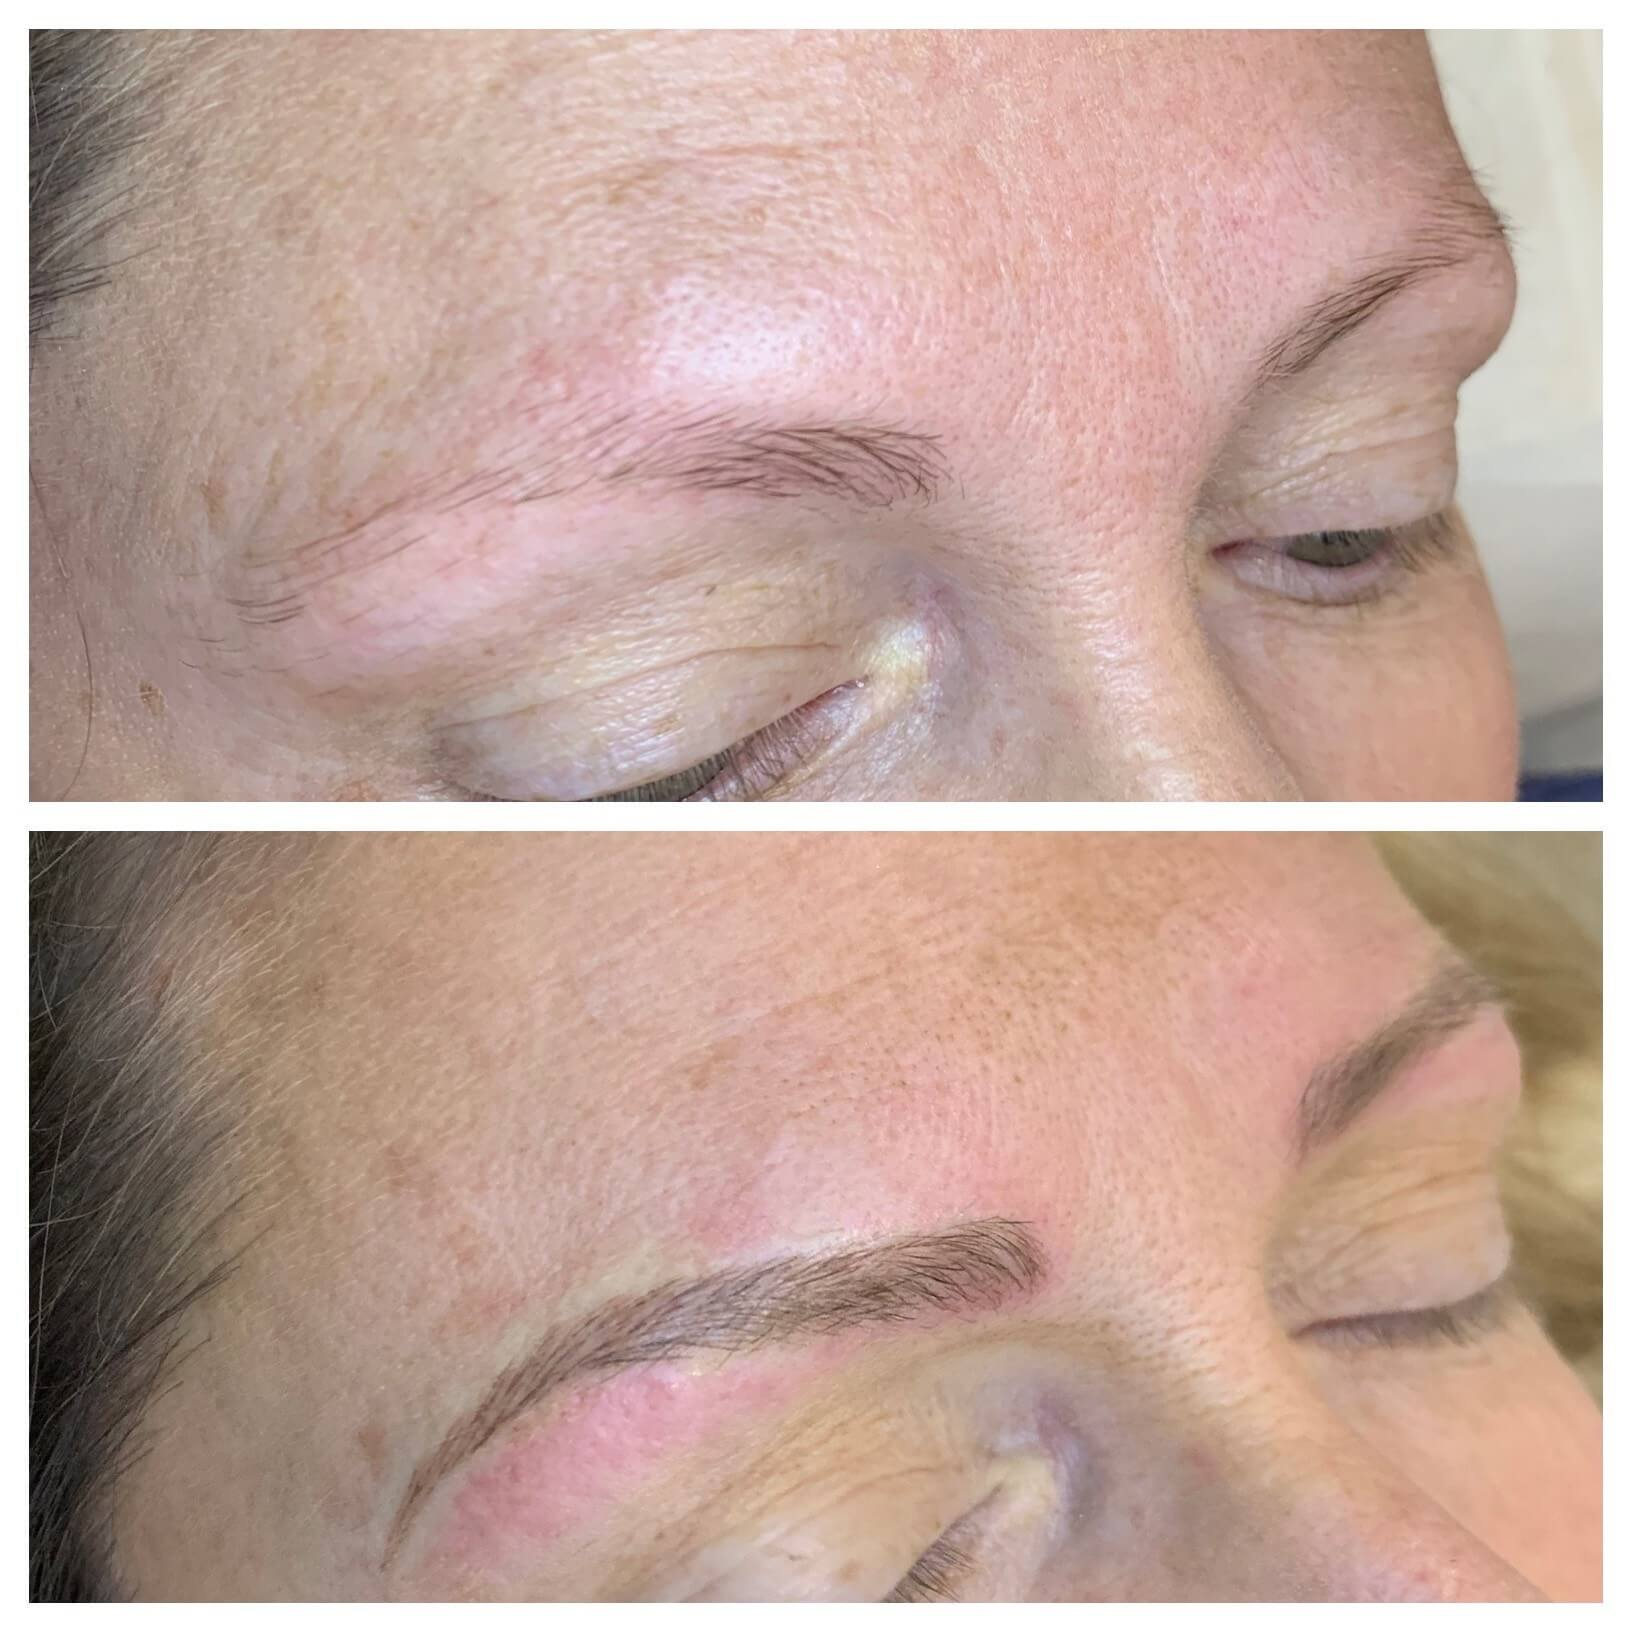 ATTENTION: A Thing You Need to Know About Microblading